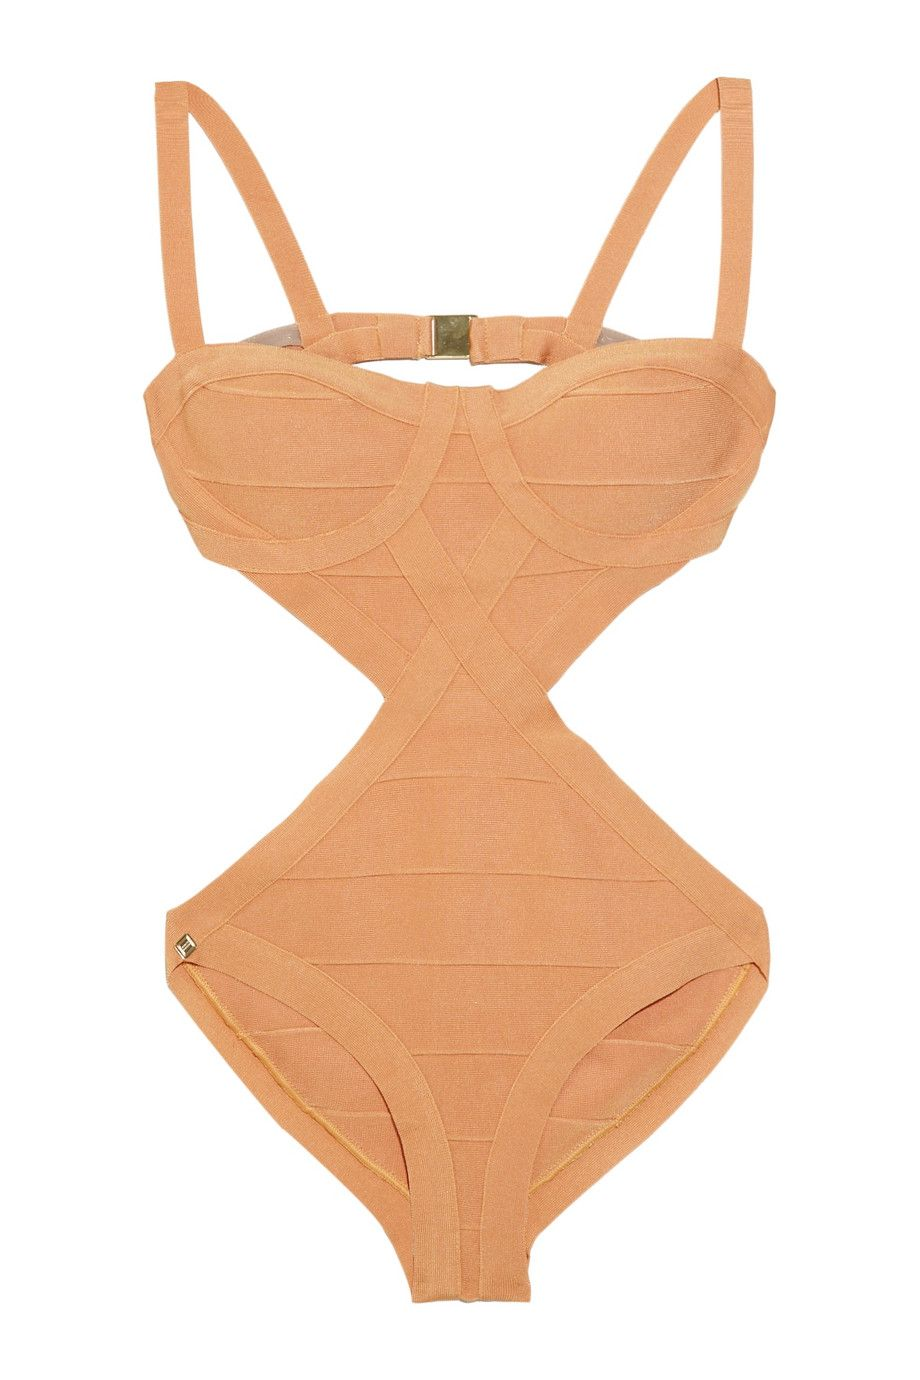 Hervé Léger Cutout bandage swimsuit - 50% Off Now at THE OUTNET